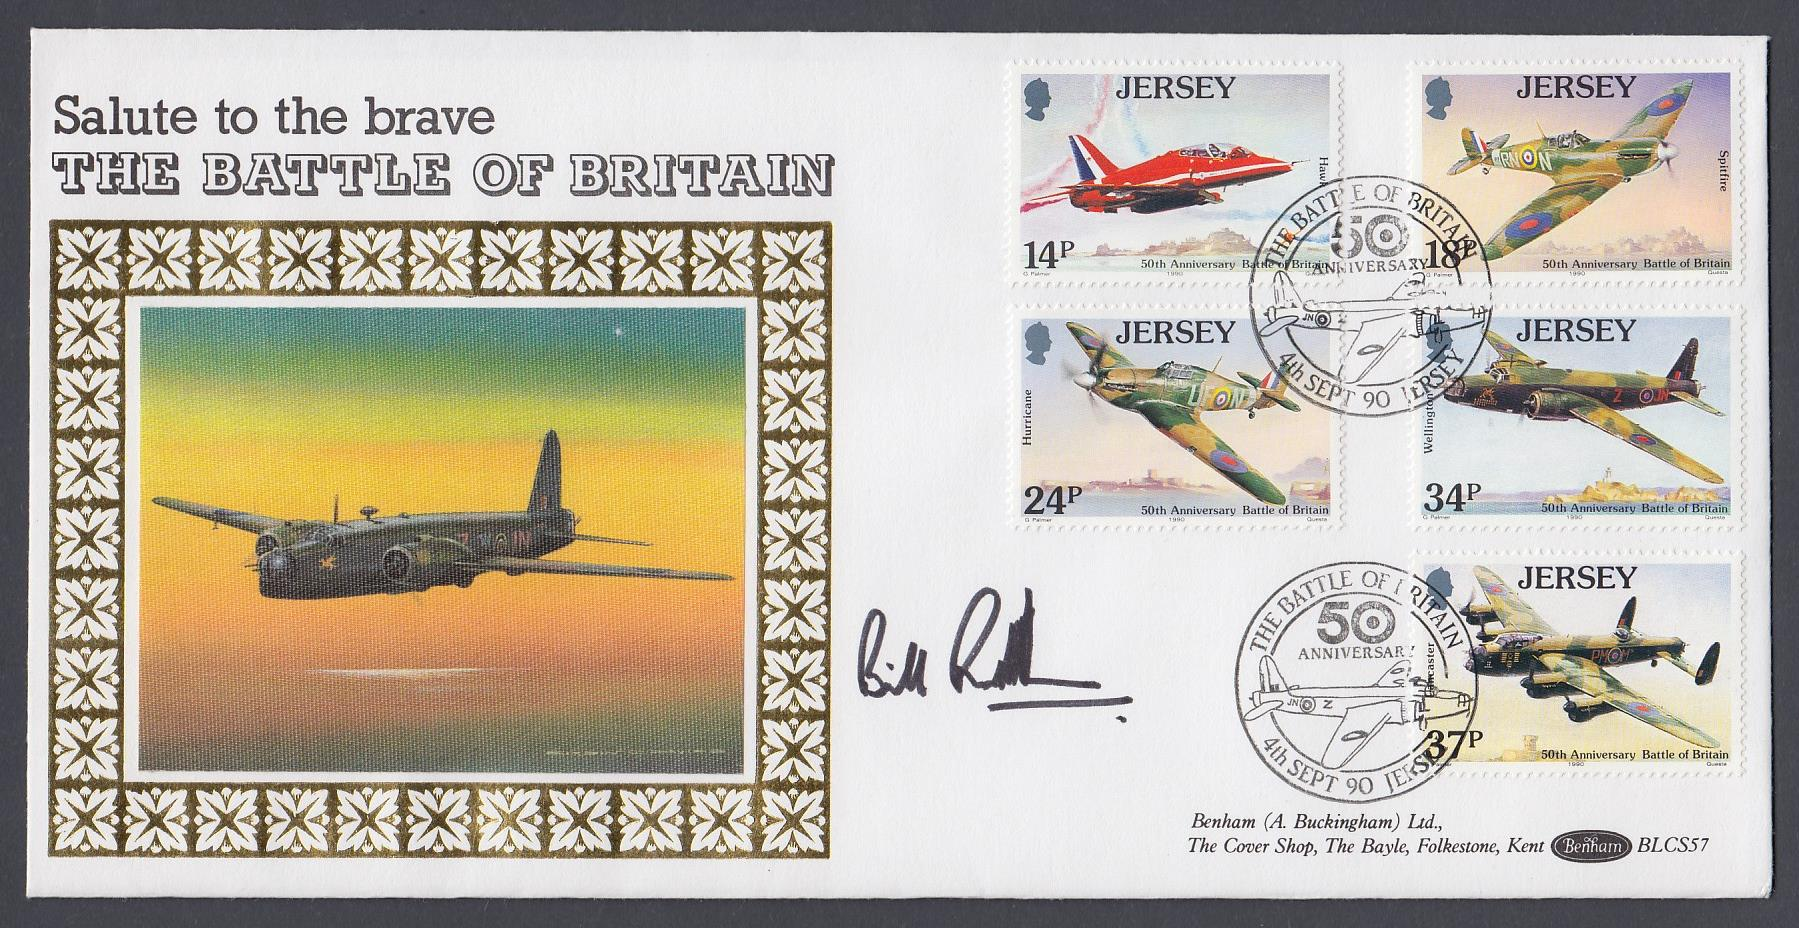 AUTOGRAPH : 1990 Jersey Battle of Britain Benham cover signed by Bill Randell